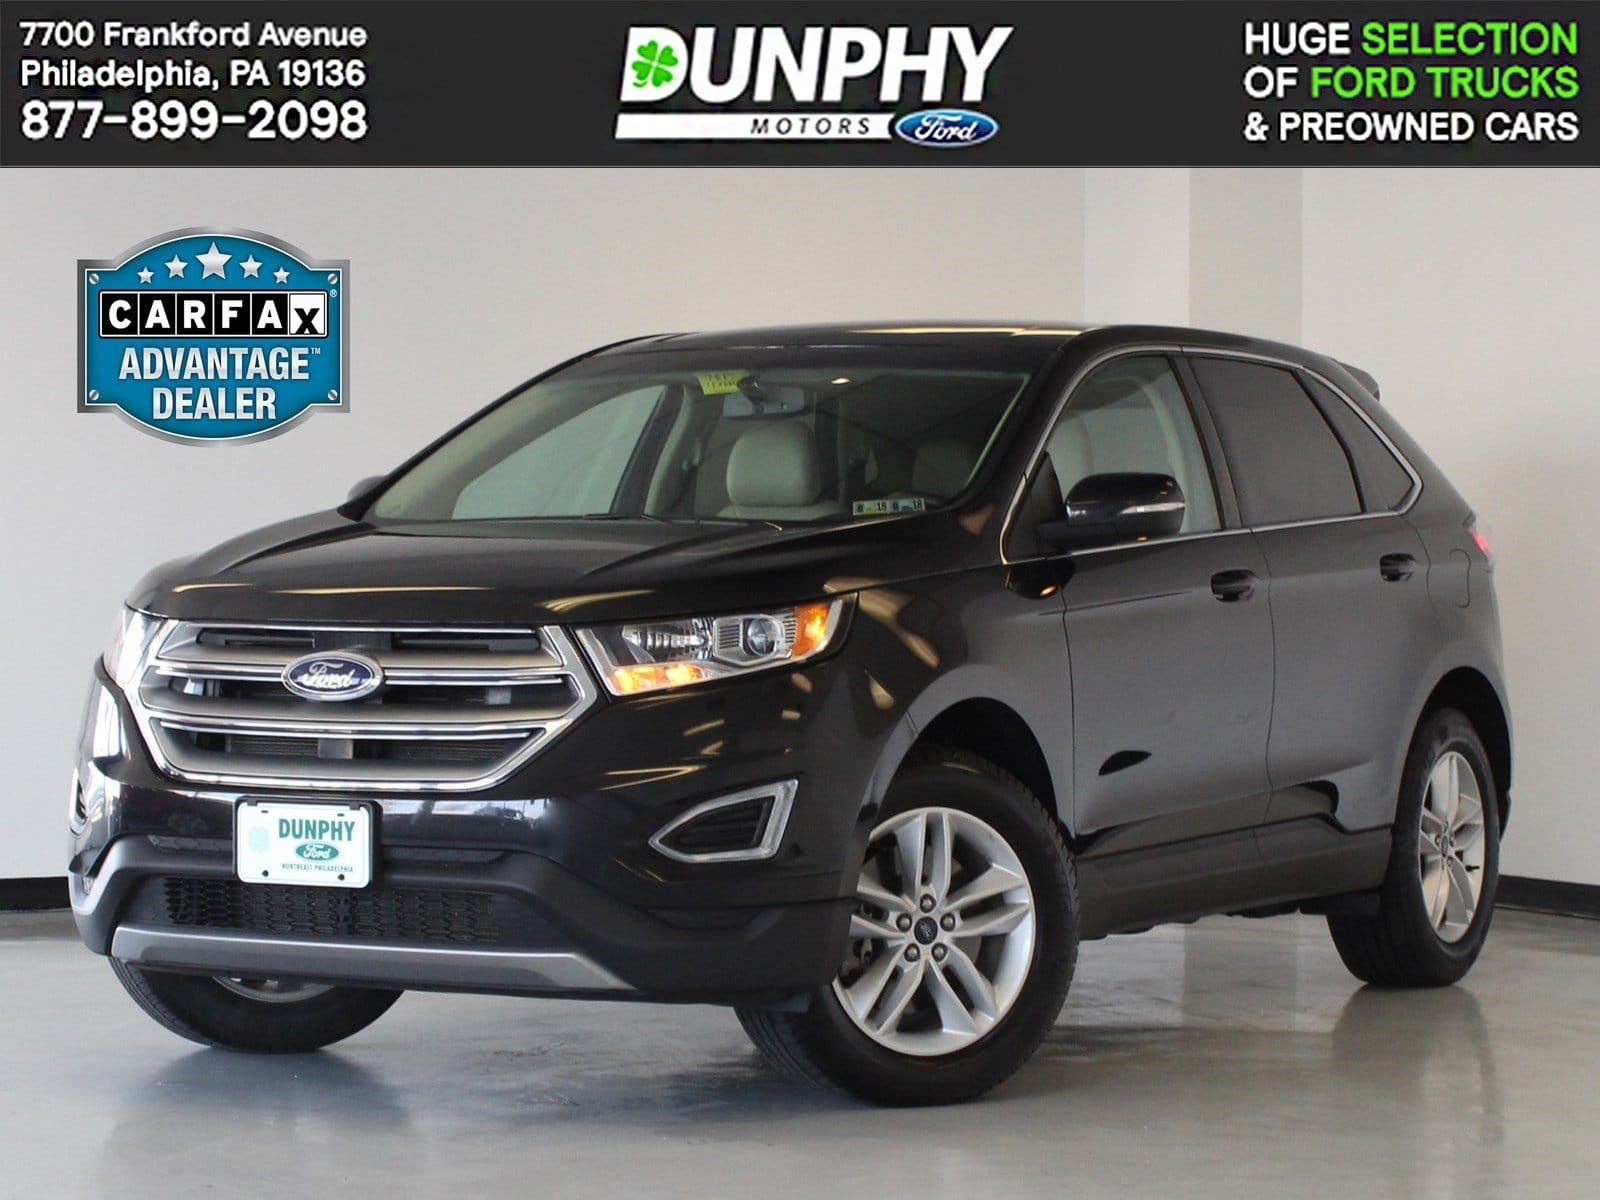 Used Cars for Sale In Philadelphia Luxury Dunphy Motors